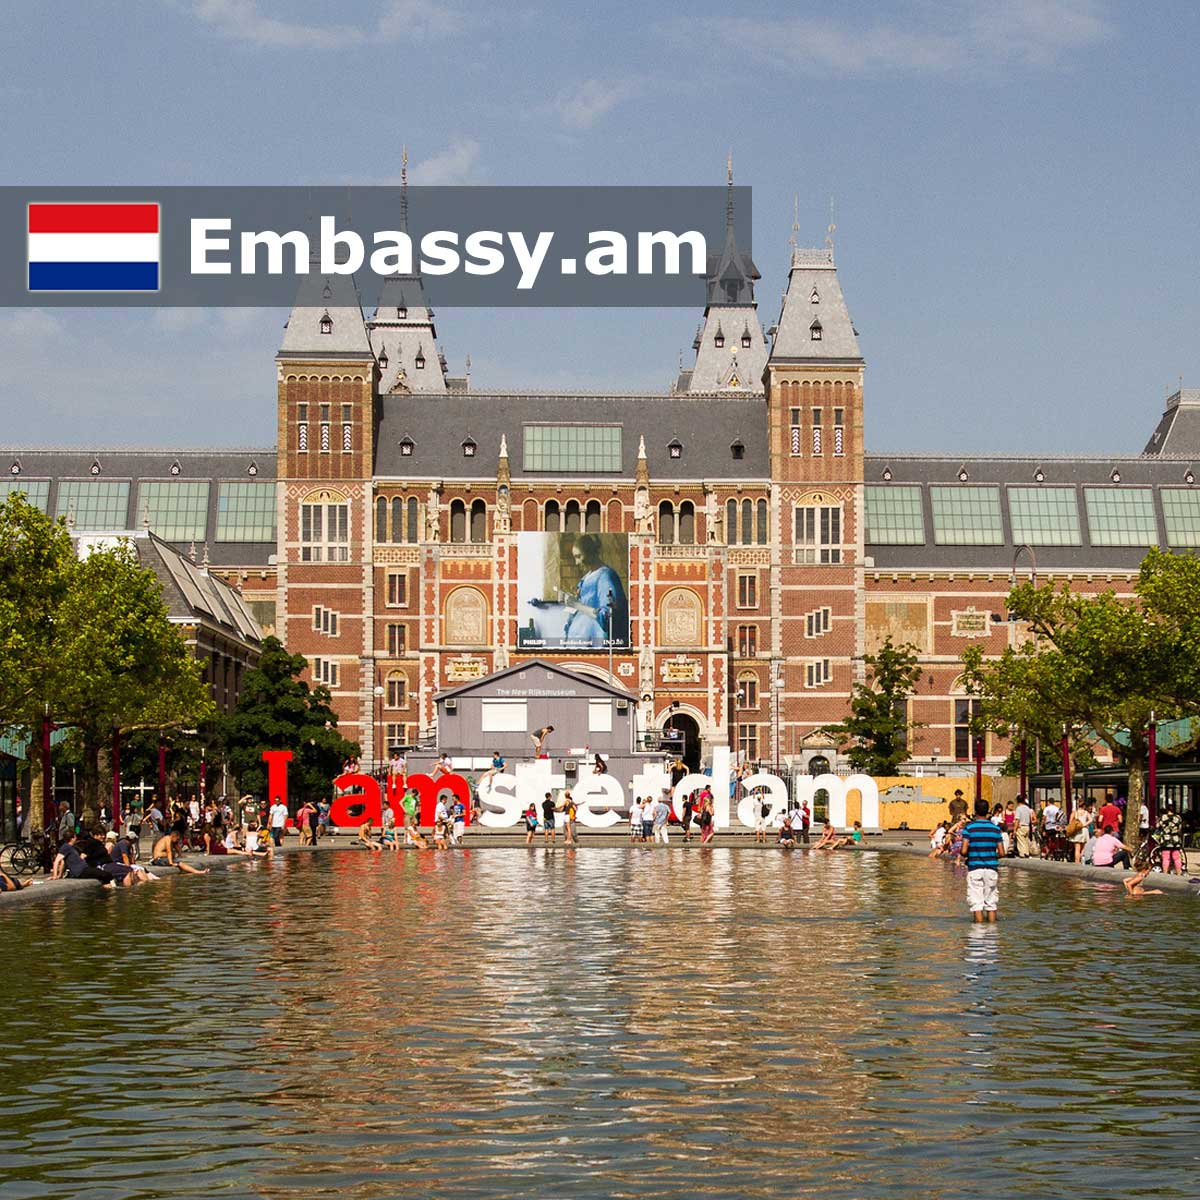 Hotels in Netherlands - Embassy.am